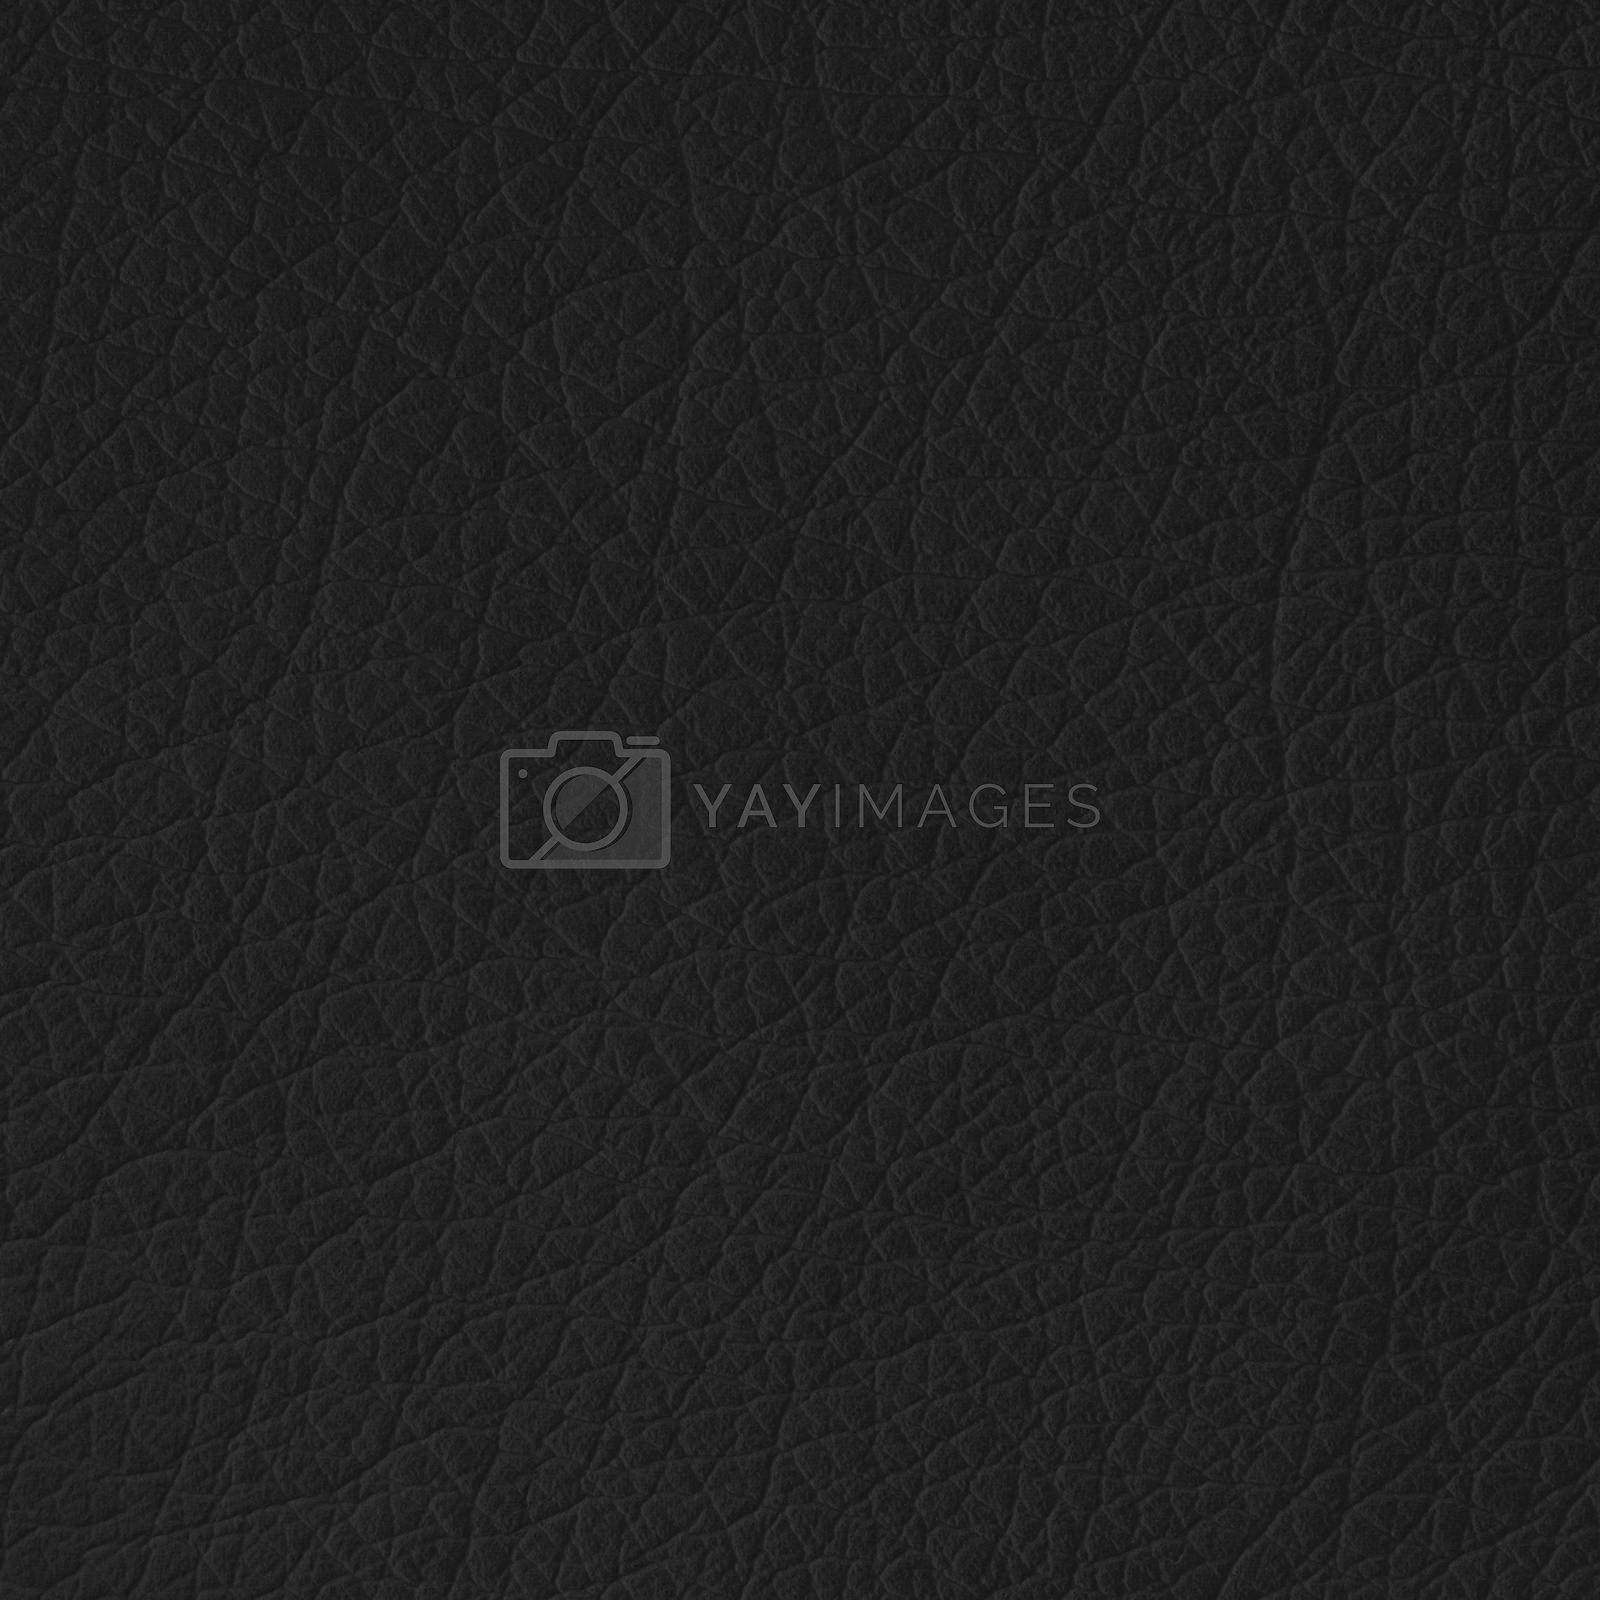 Black leather texture closeup, useful as background